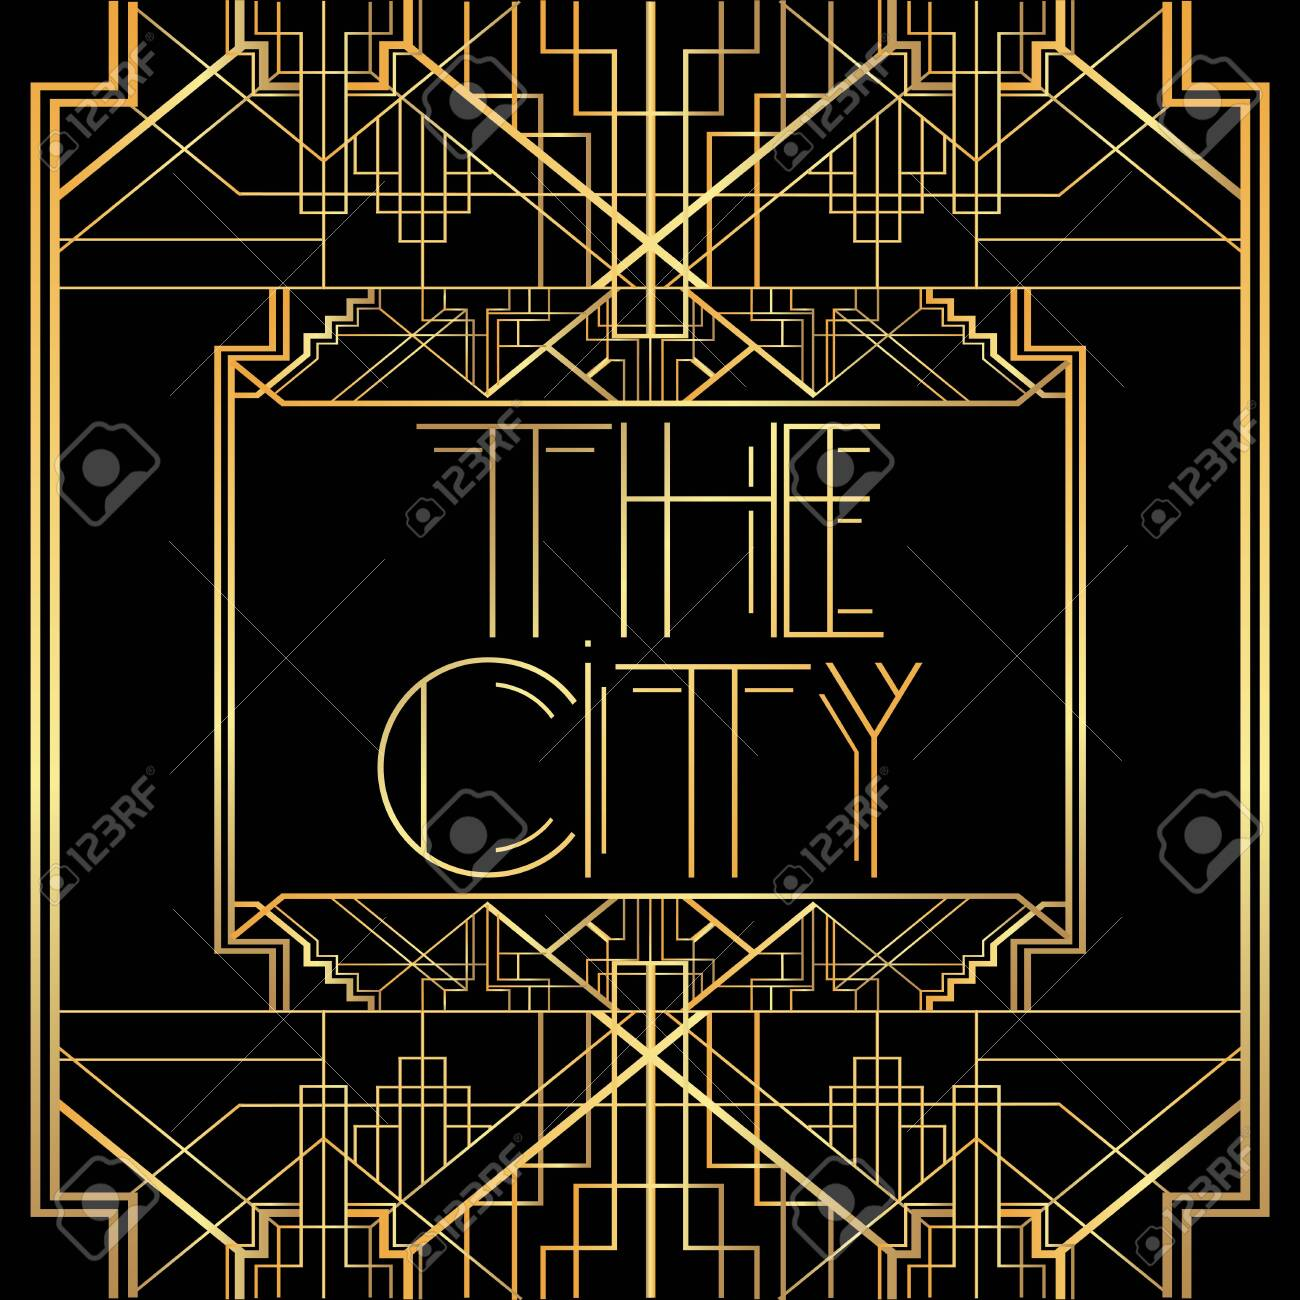 Art Deco The City text. Golden decorative greeting card, sign with vintage letters. - 141917396